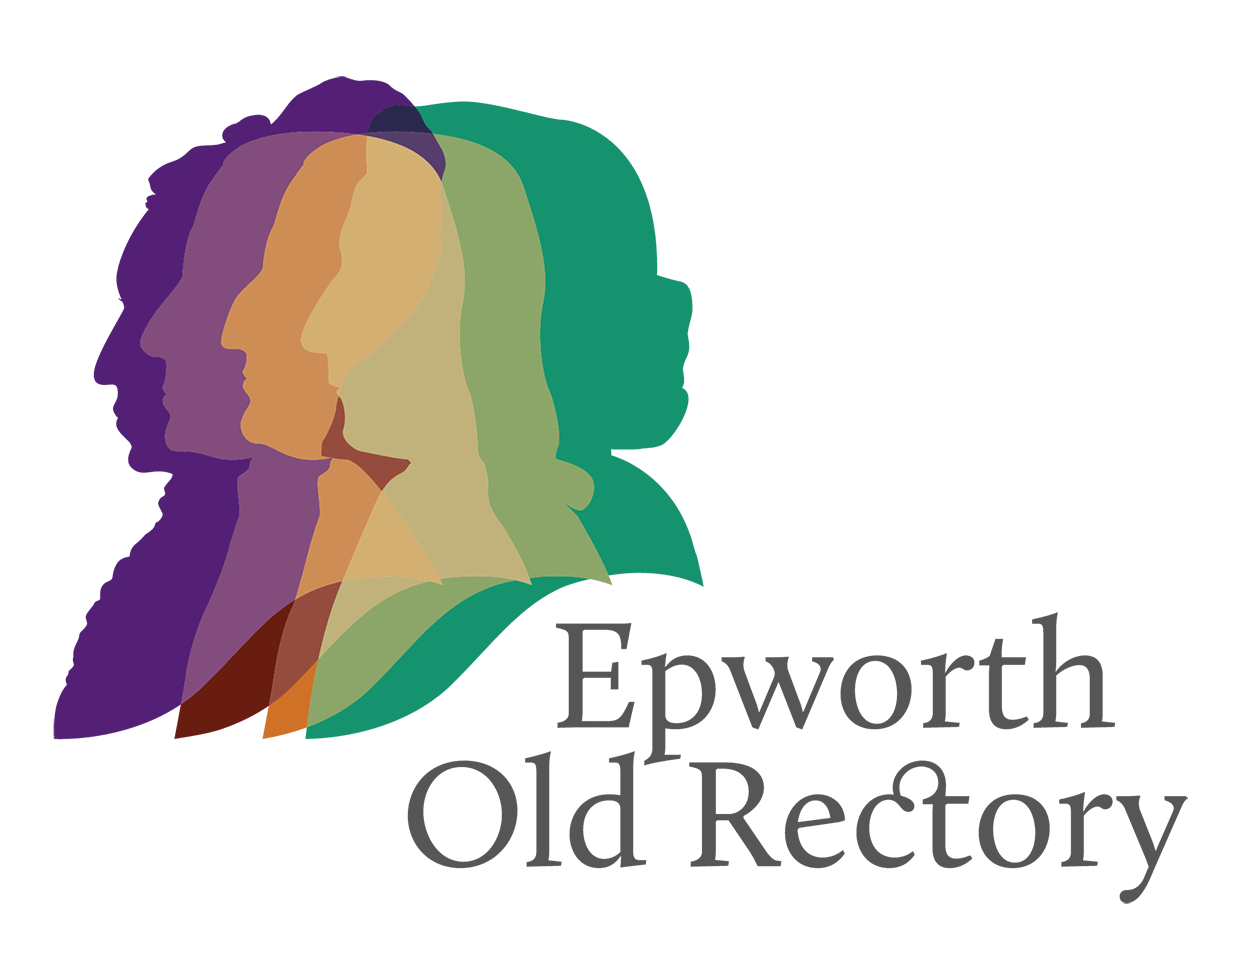 Welcome to Epworth Old Rectory